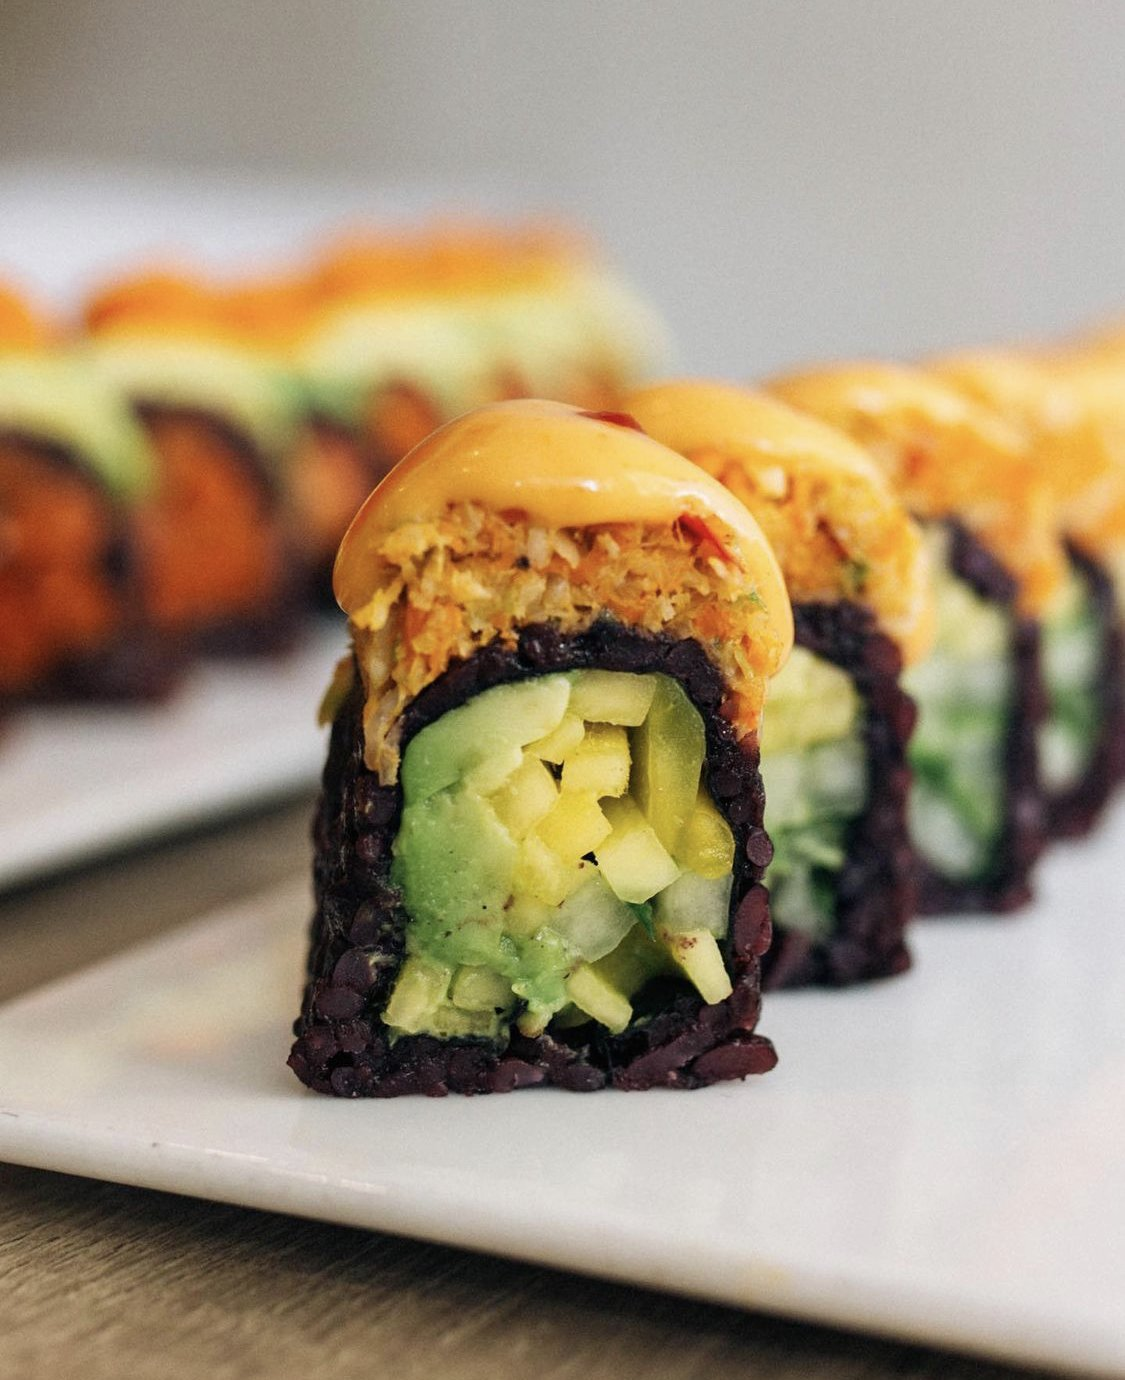 Spicy Mang roll from Beyond Sushi